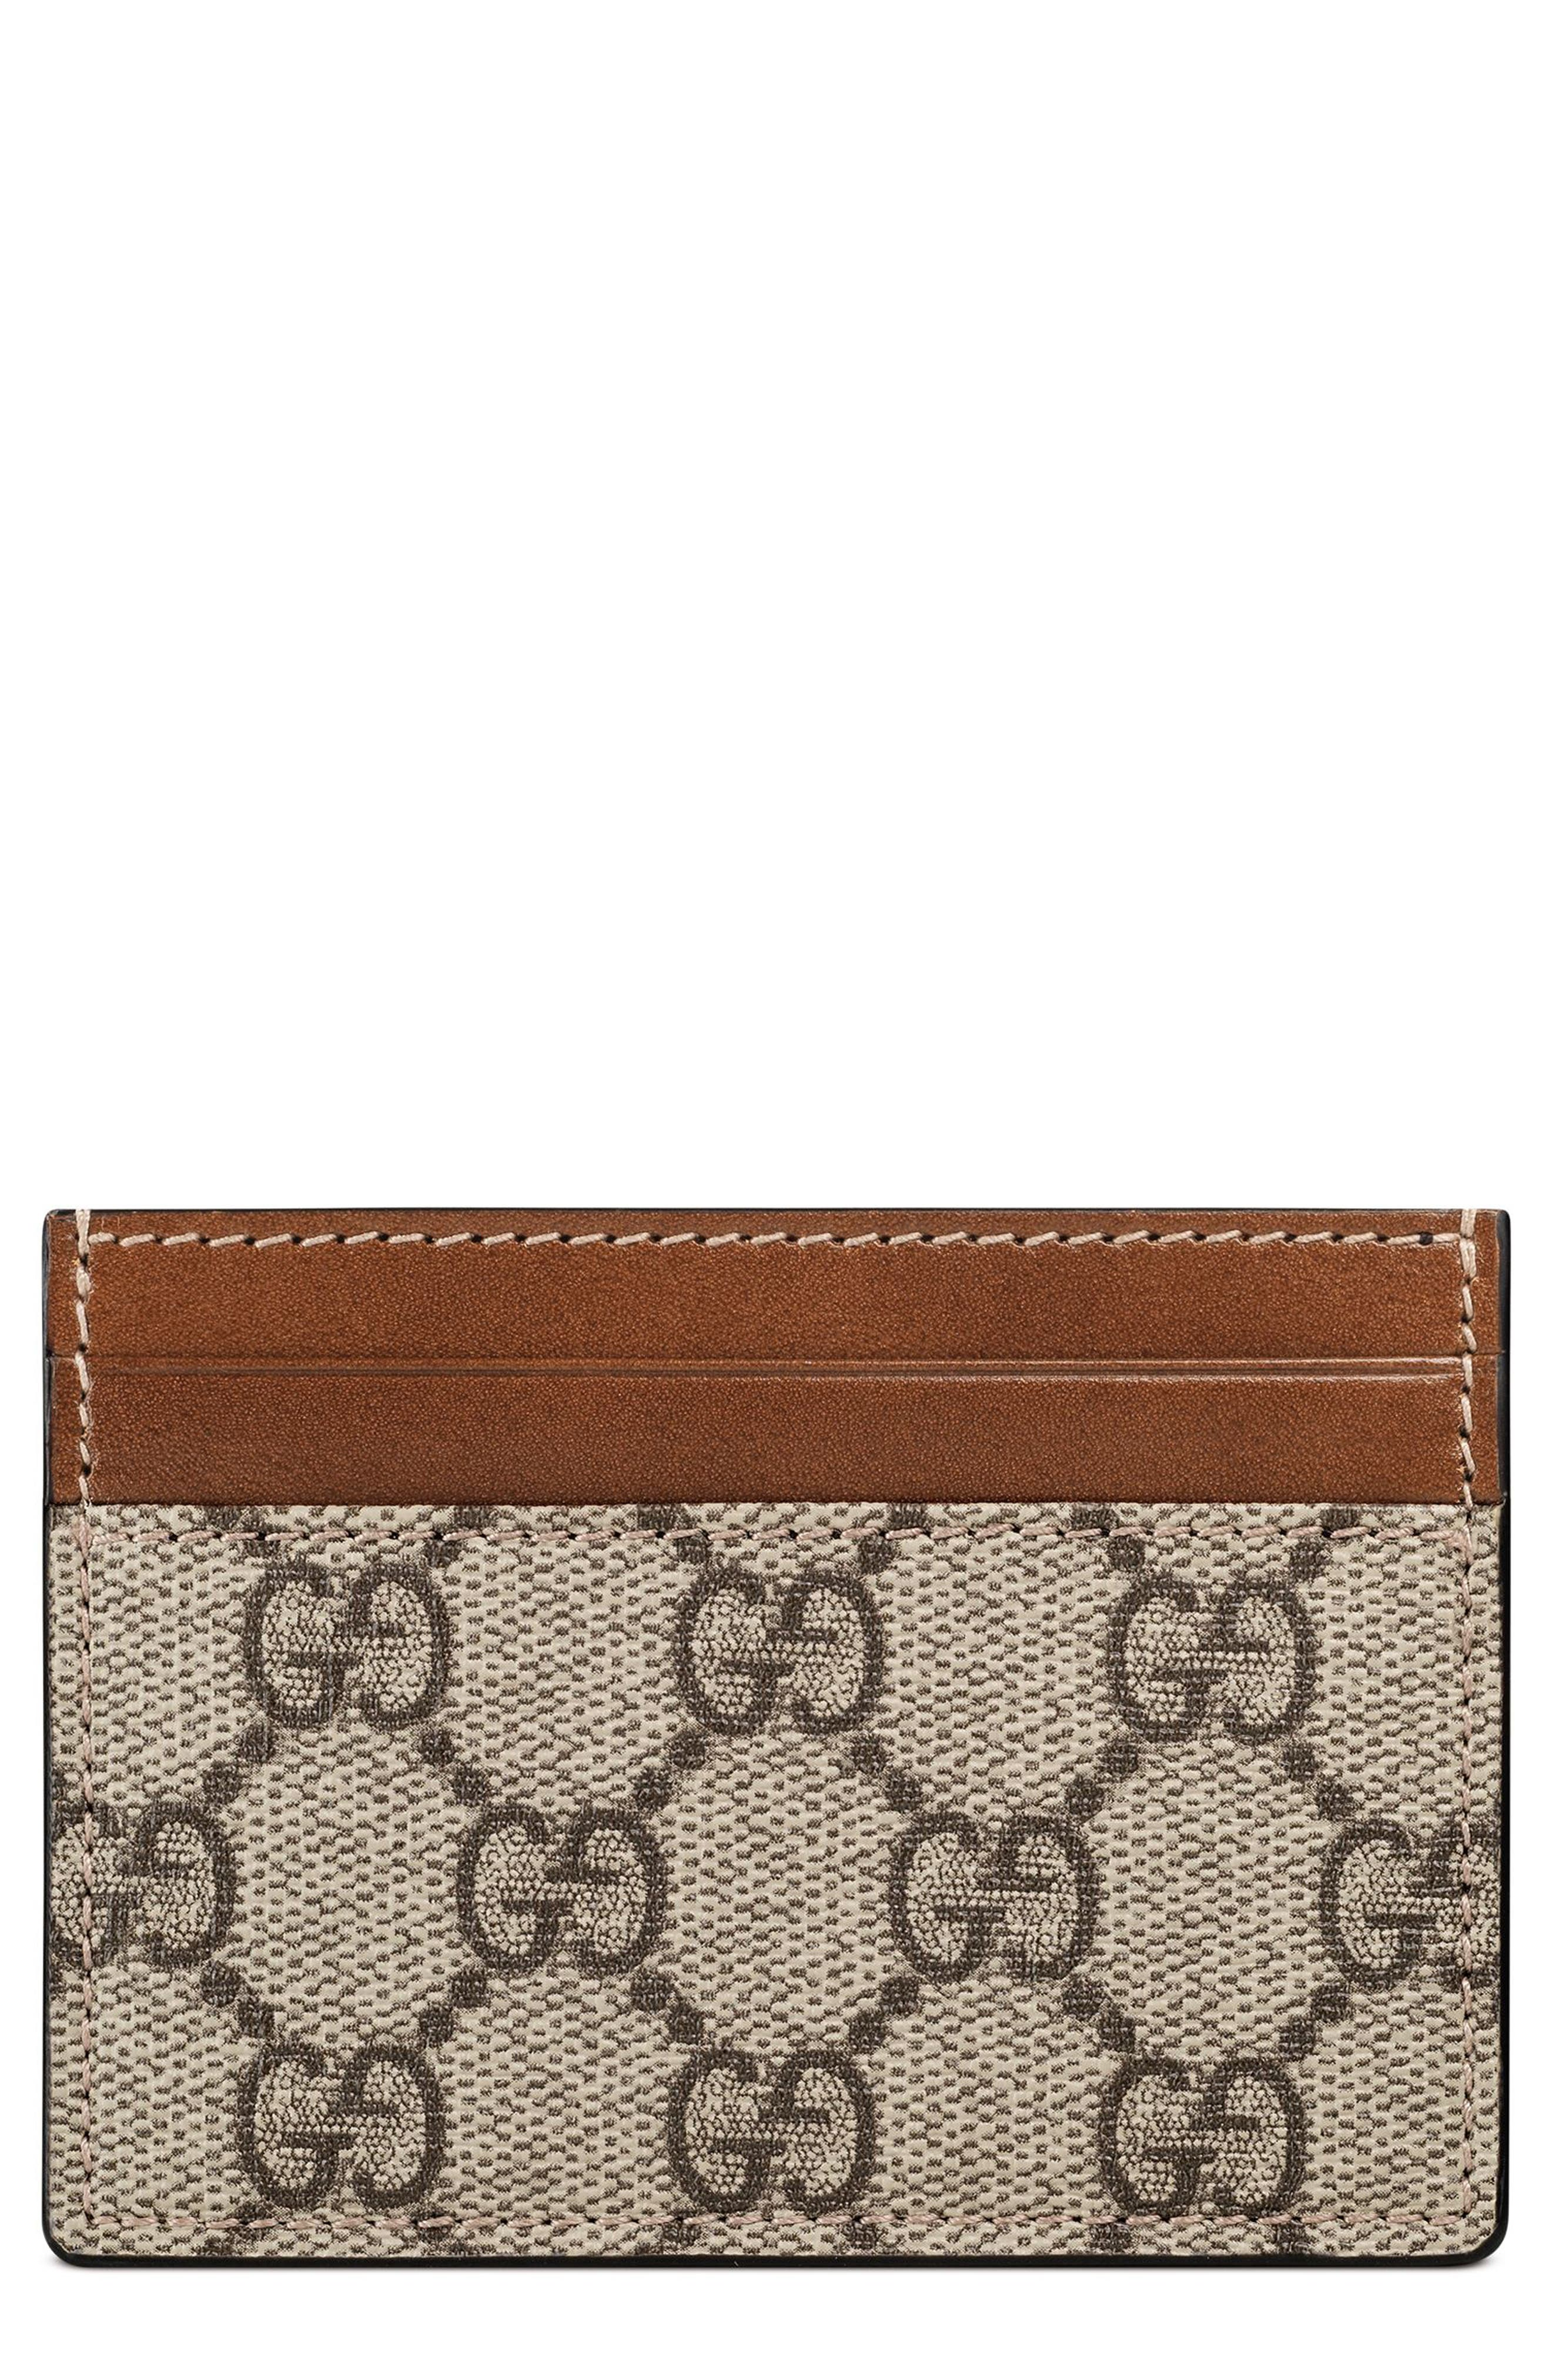 Linea GG Supreme Canvas Card Case,                         Main,                         color, BEIGE EBONY/ CUIR